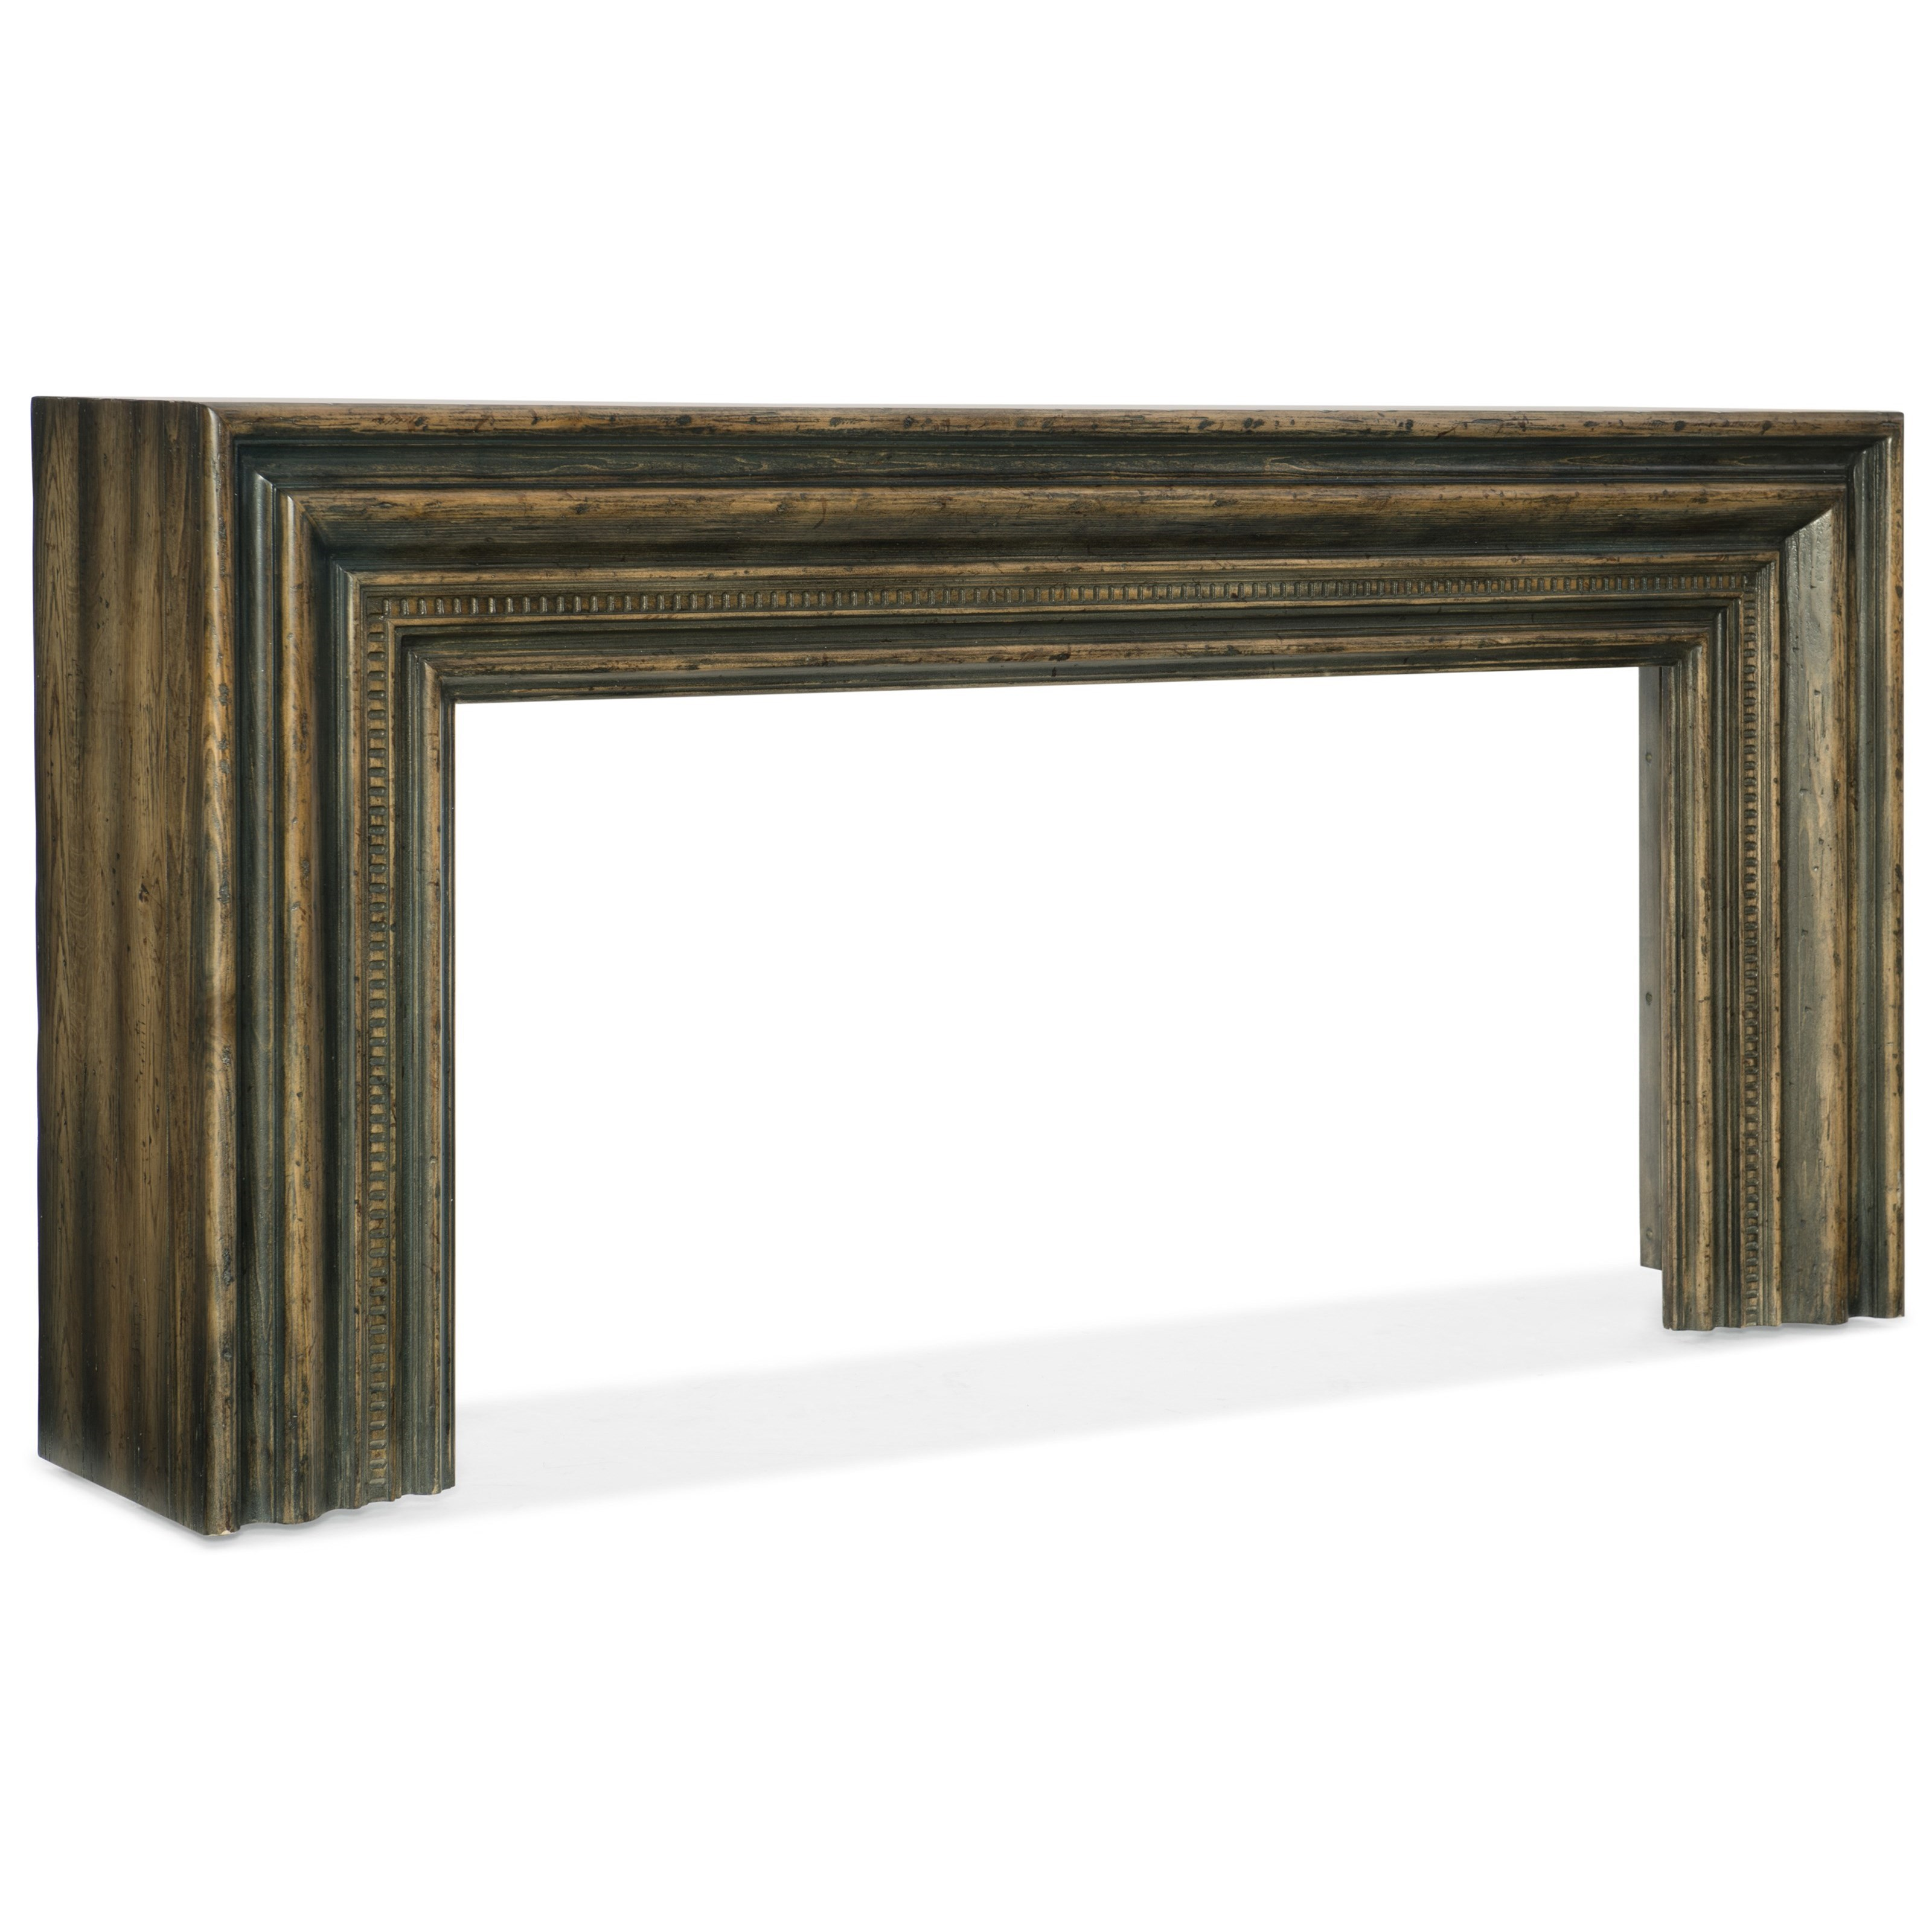 Hooker Furniture American Life-Crafted Hall Console - Item Number: 1654-85001-DKW1